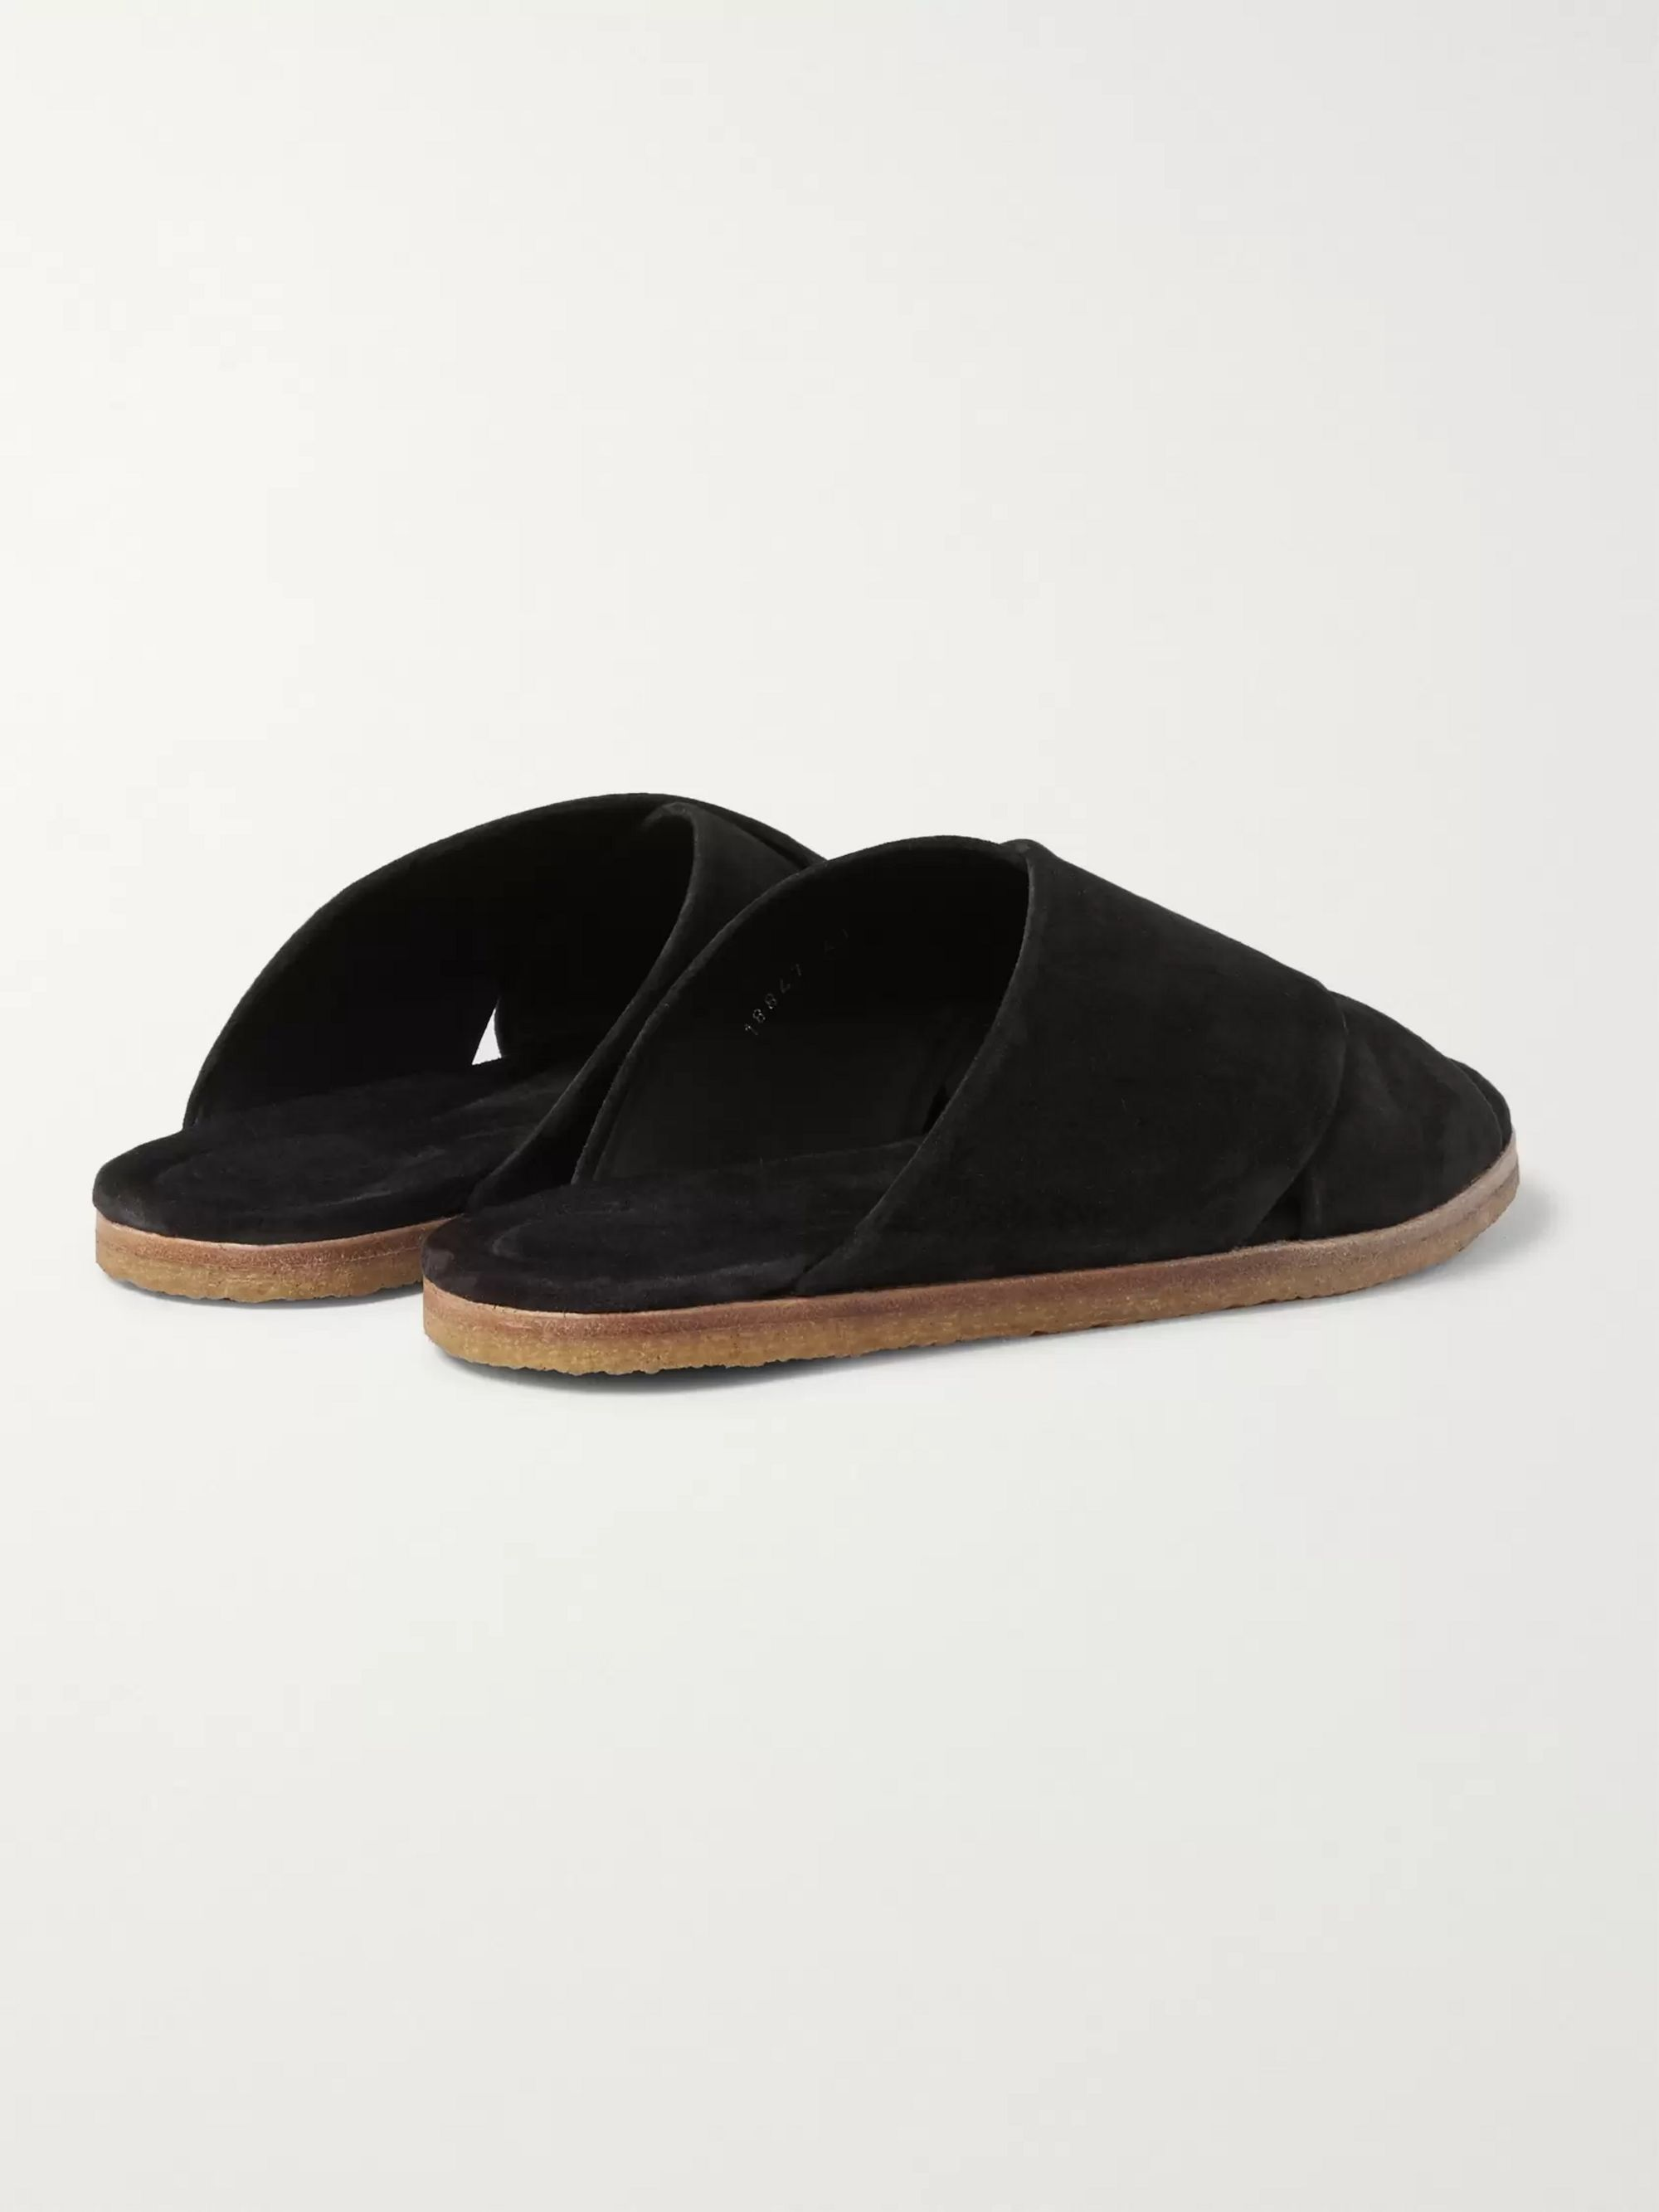 Dries Van Noten Suede Sandals